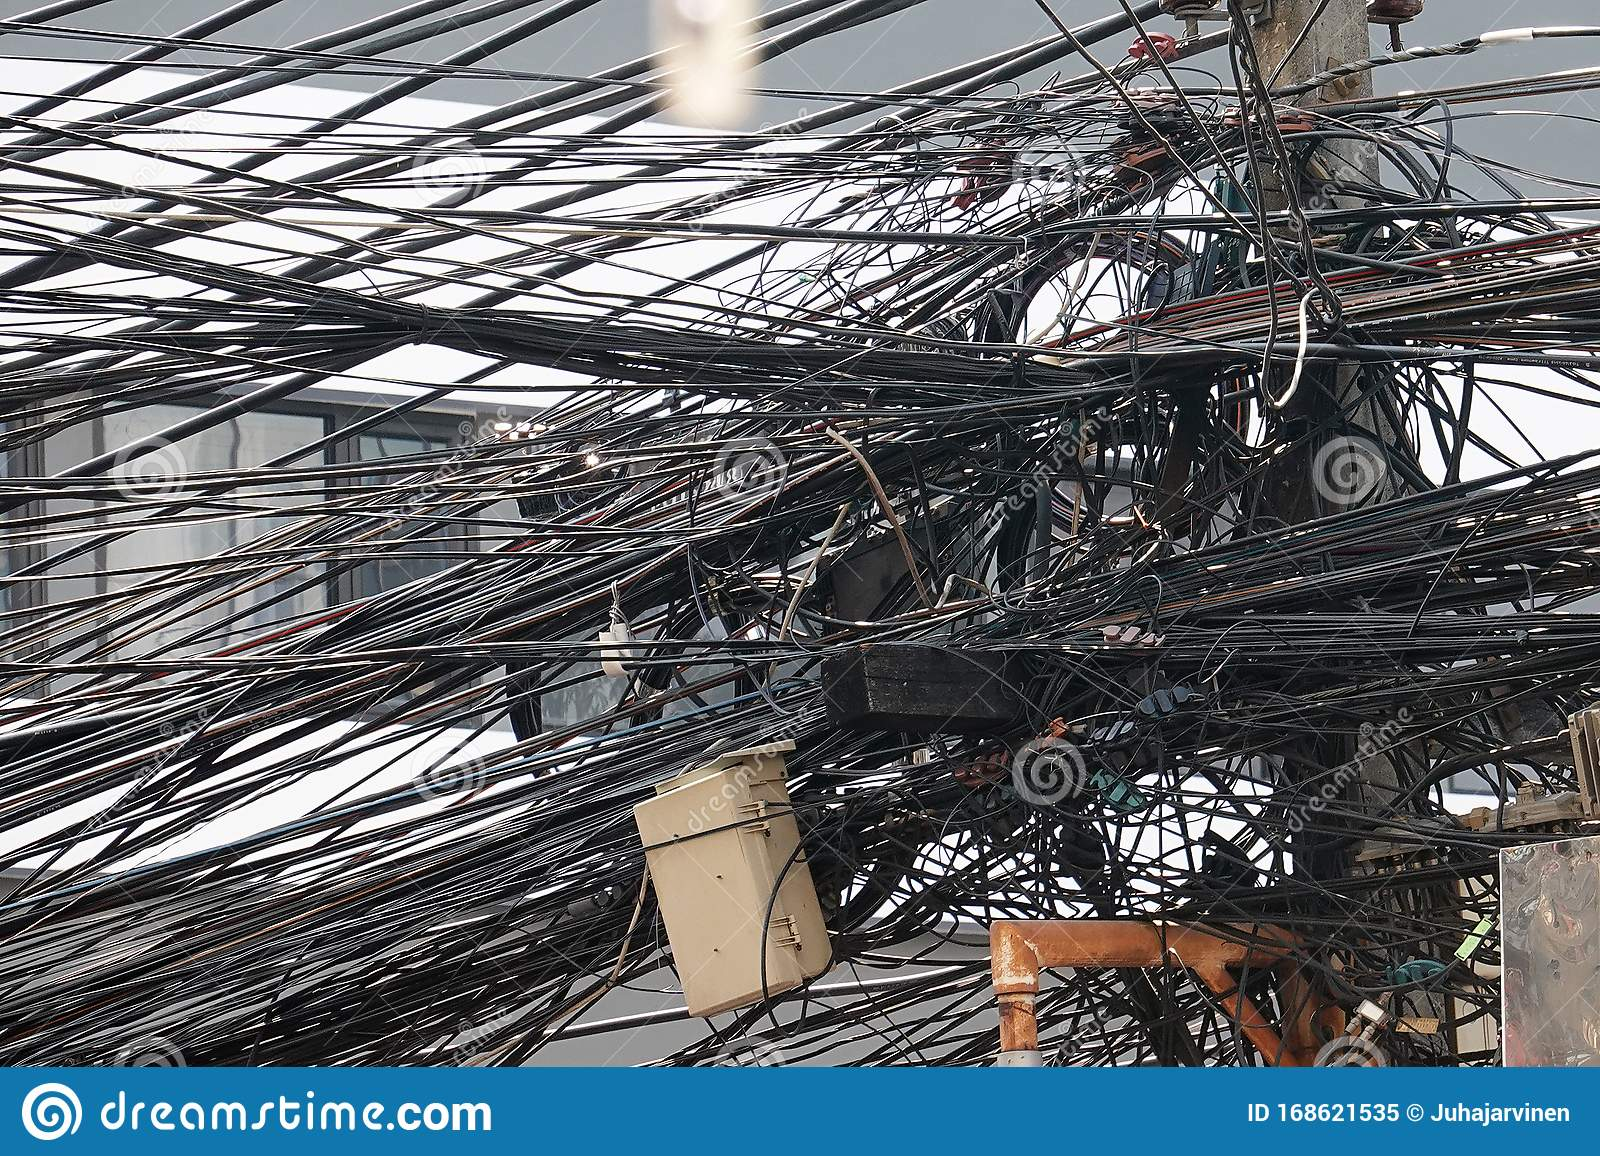 Messy Cables And Wires In Electric Pole Stock Image Image Of Confusion Pole 168621535